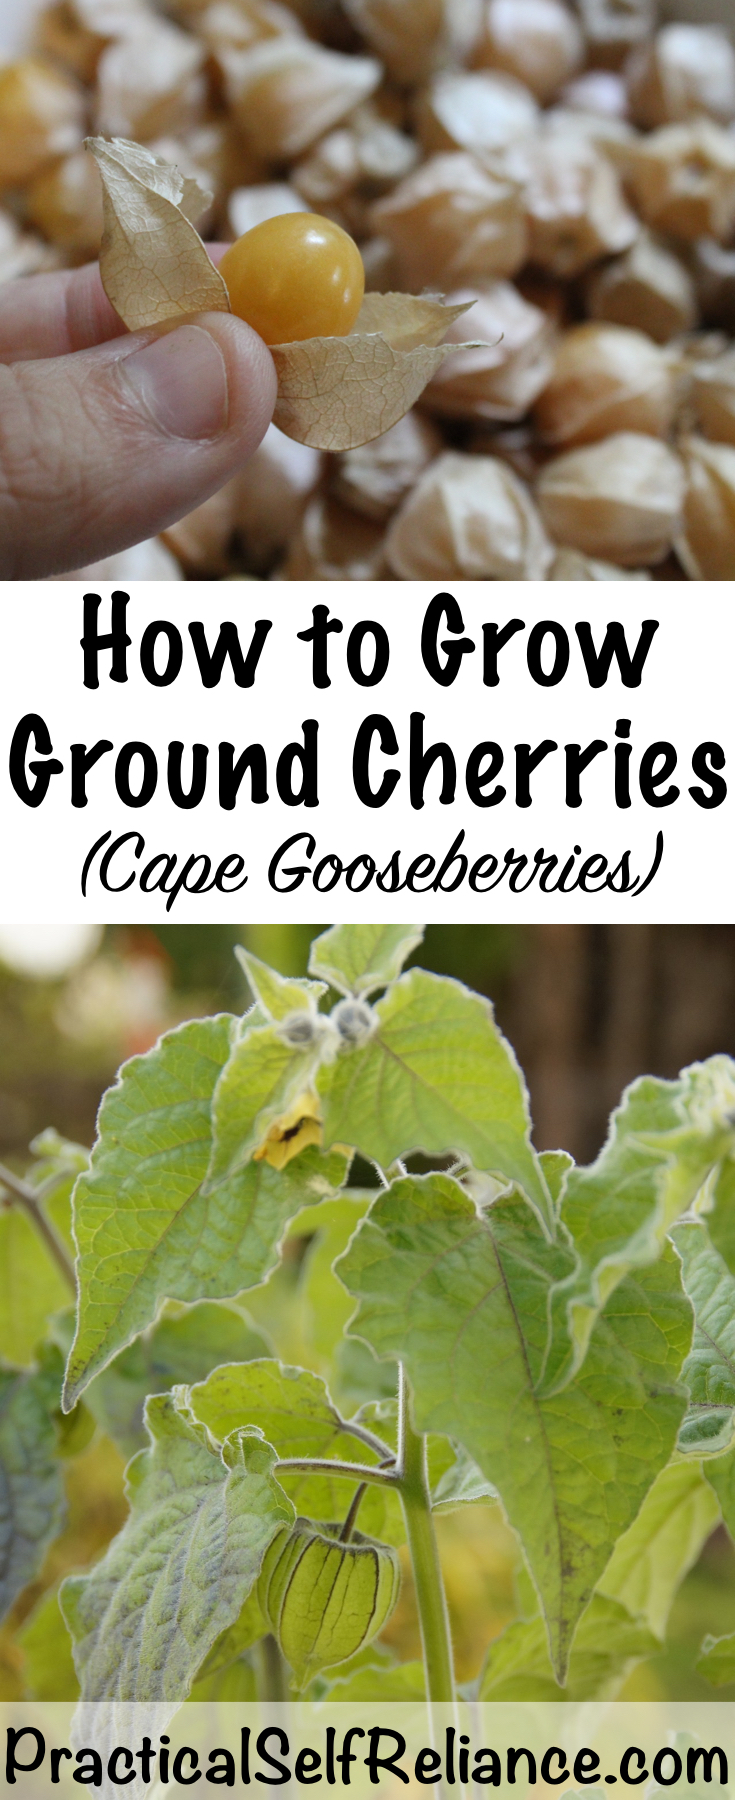 How To Grow Custard Apple: How To Grow Ground Cherries (Cape Gooseberries